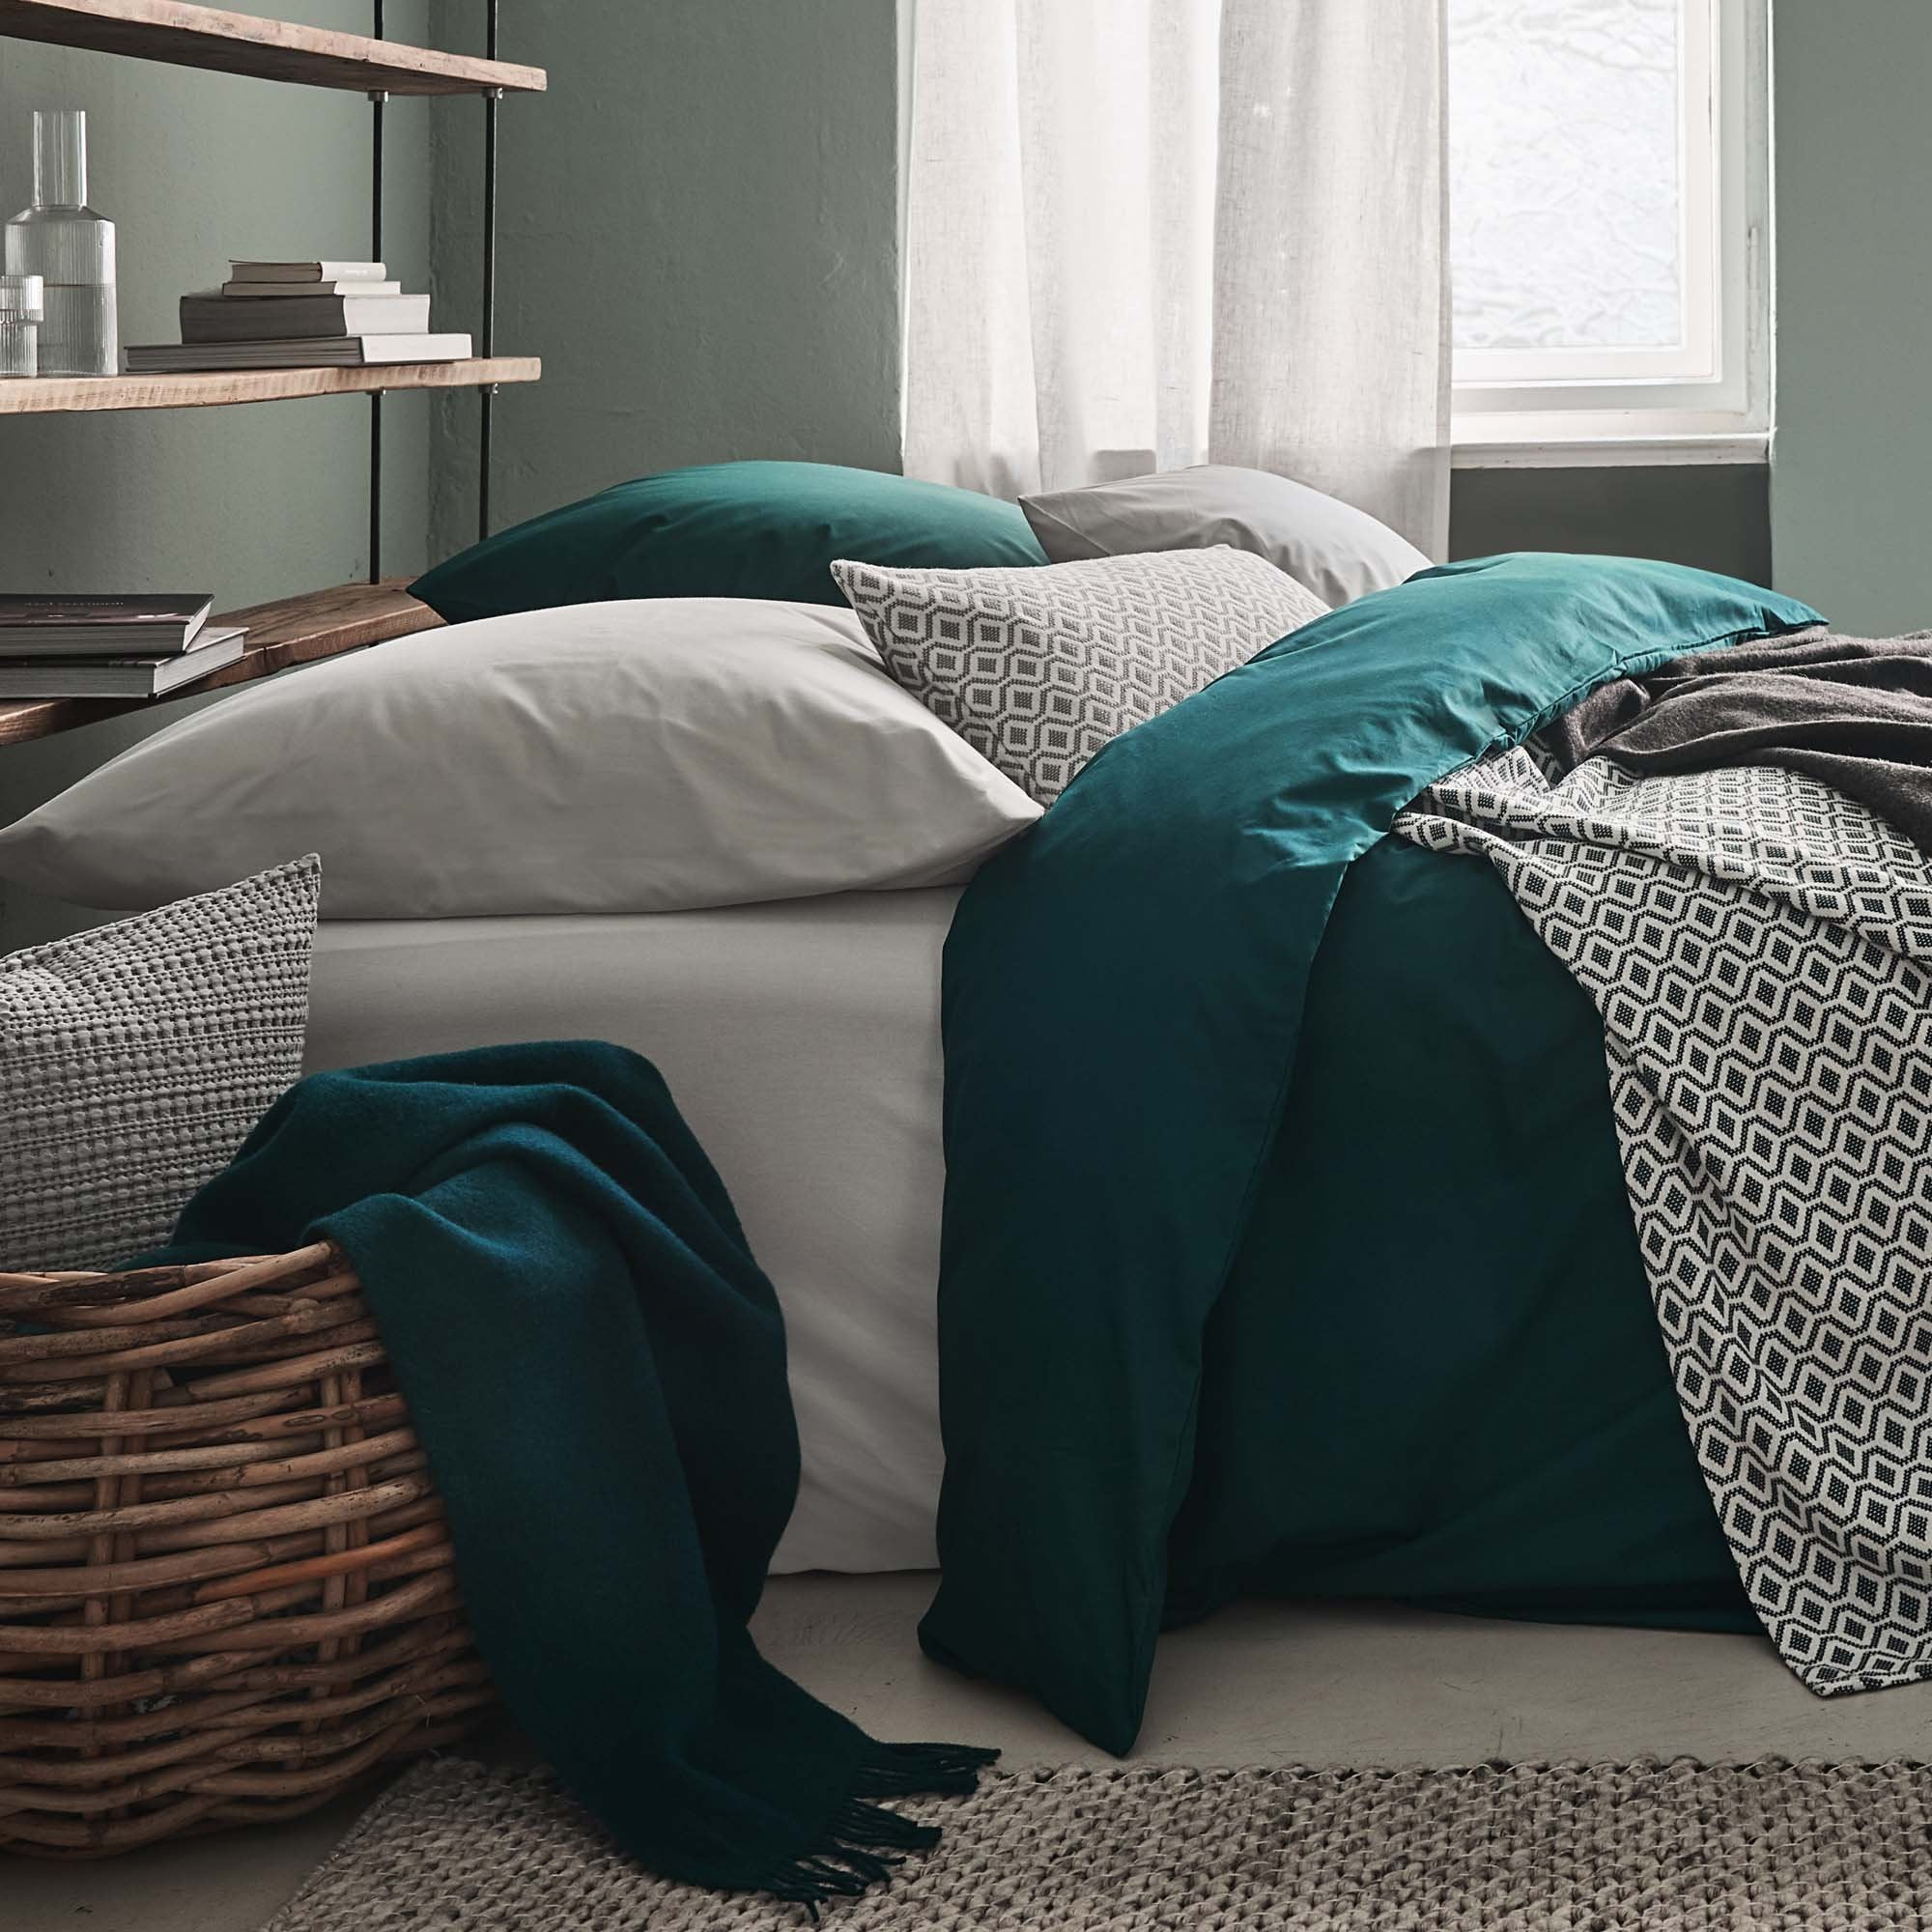 Manteigas Percale Bed Linen in forest green | Home & Living inspiration | URBANARA